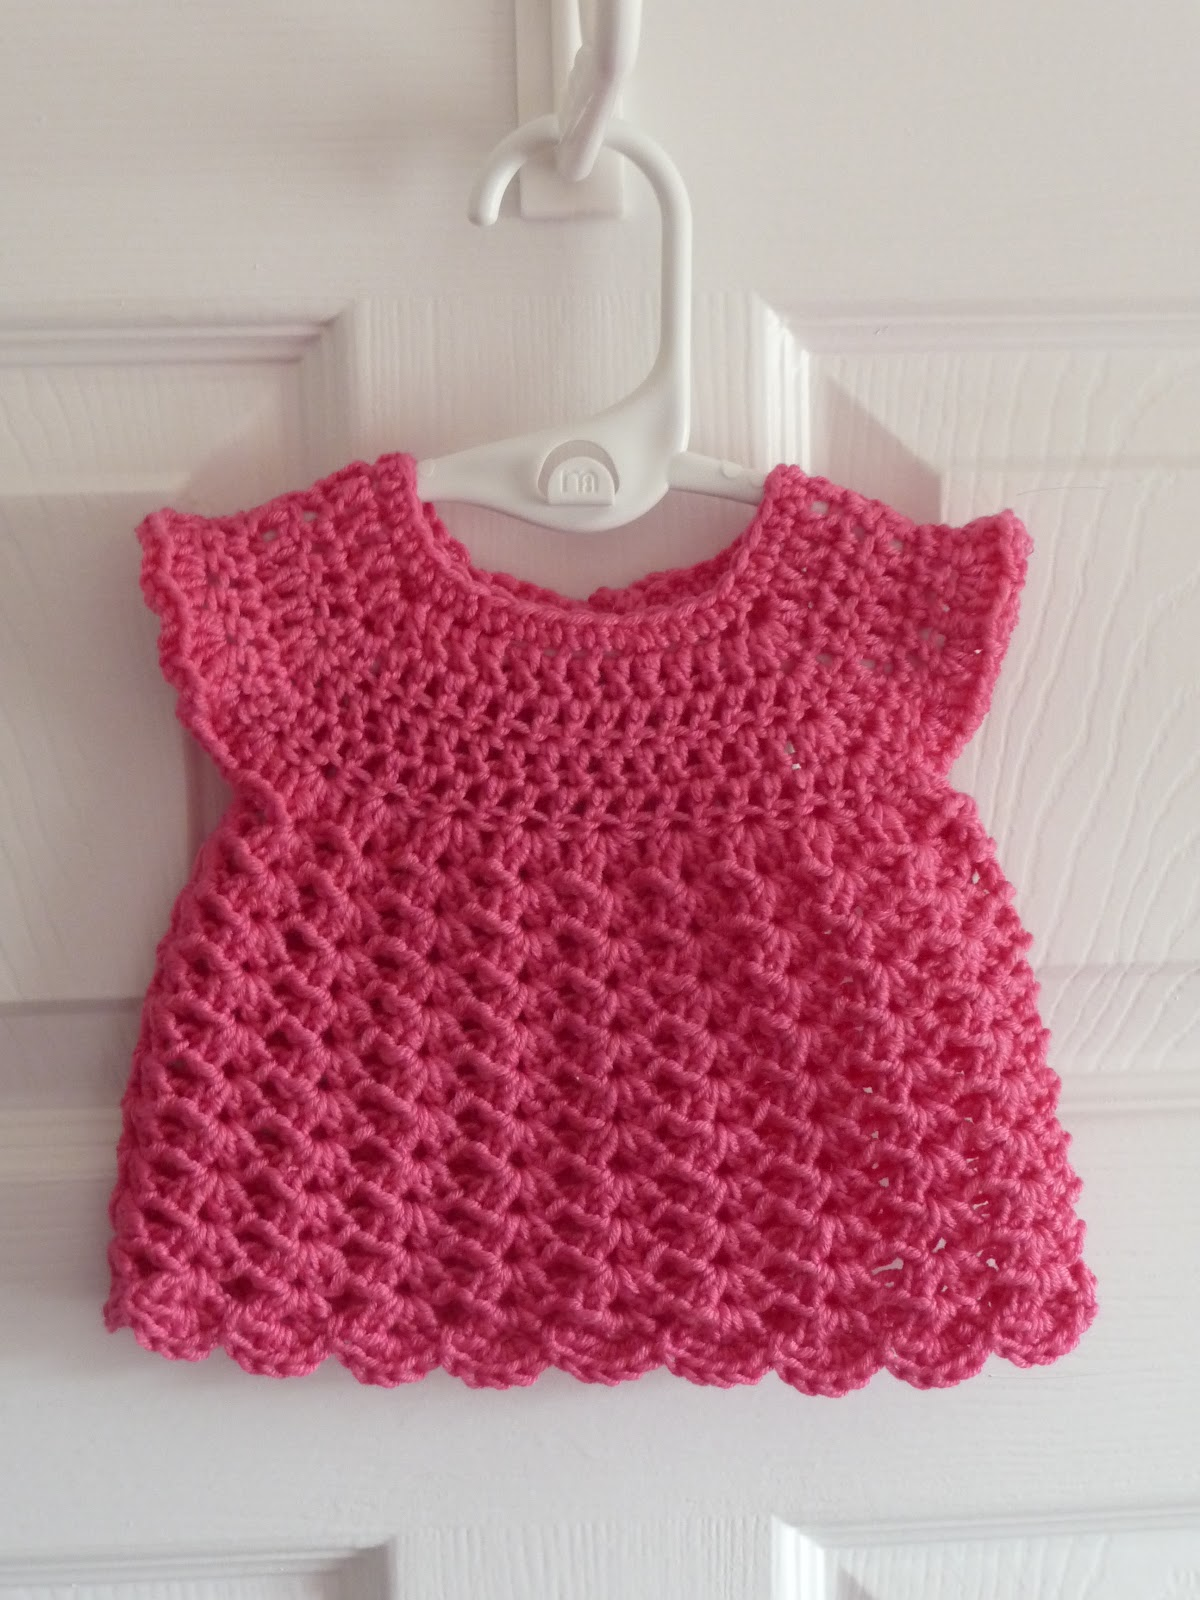 How To Crochet Baby Dress Pattern : Princess Crafts: Dinky crochet baby dress